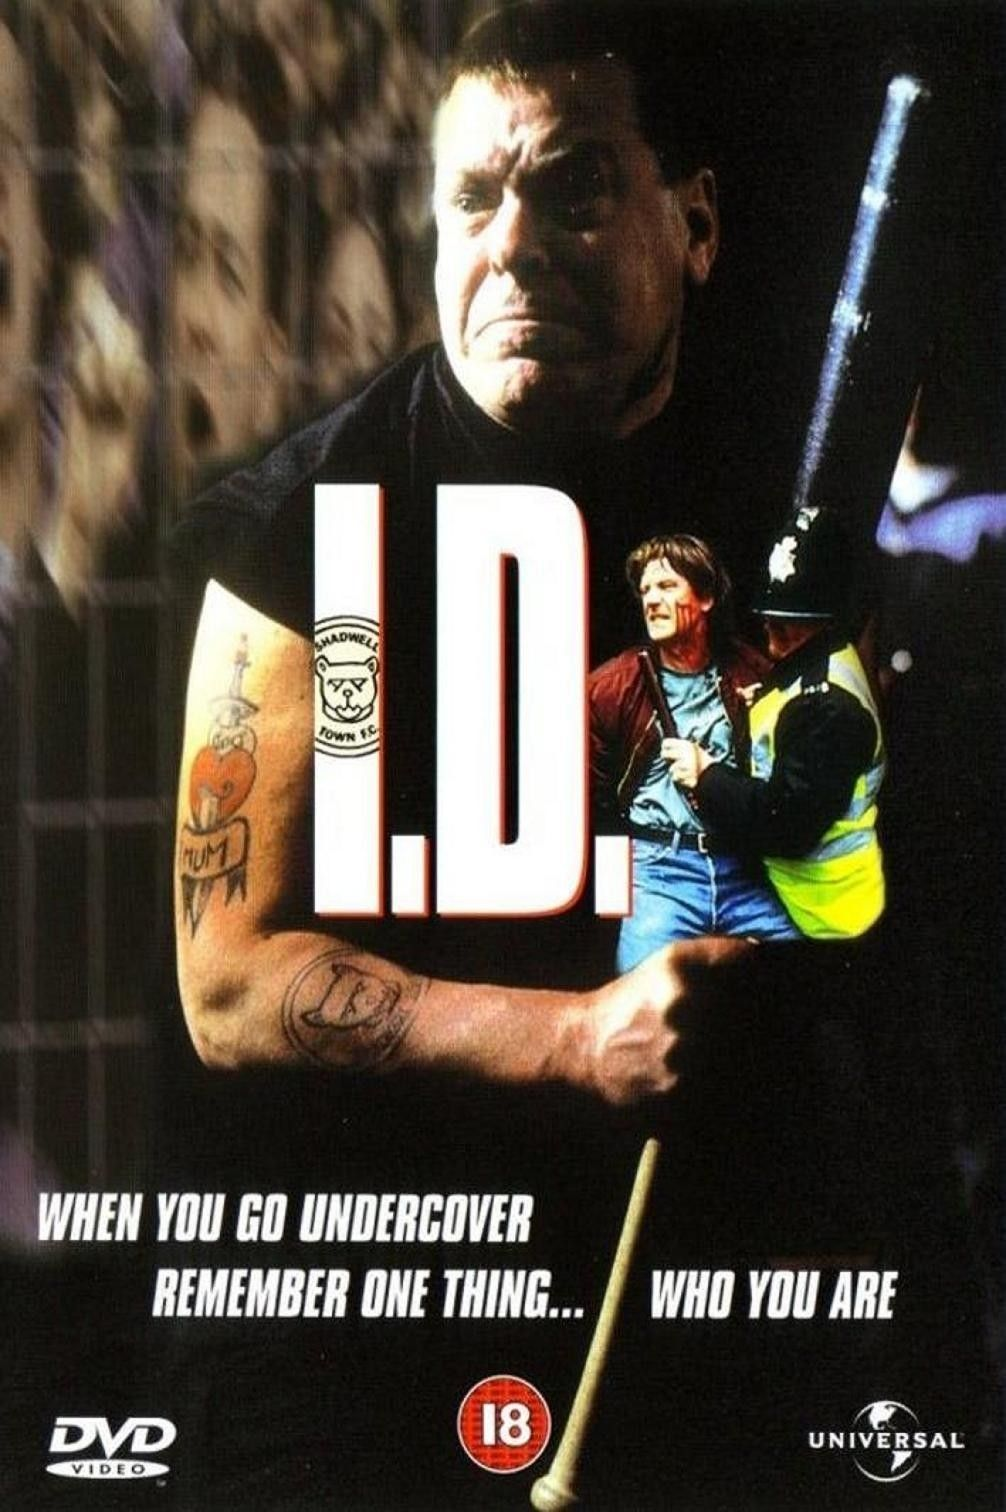 I.D. (1995) Movies online, Free movies online, Full movies